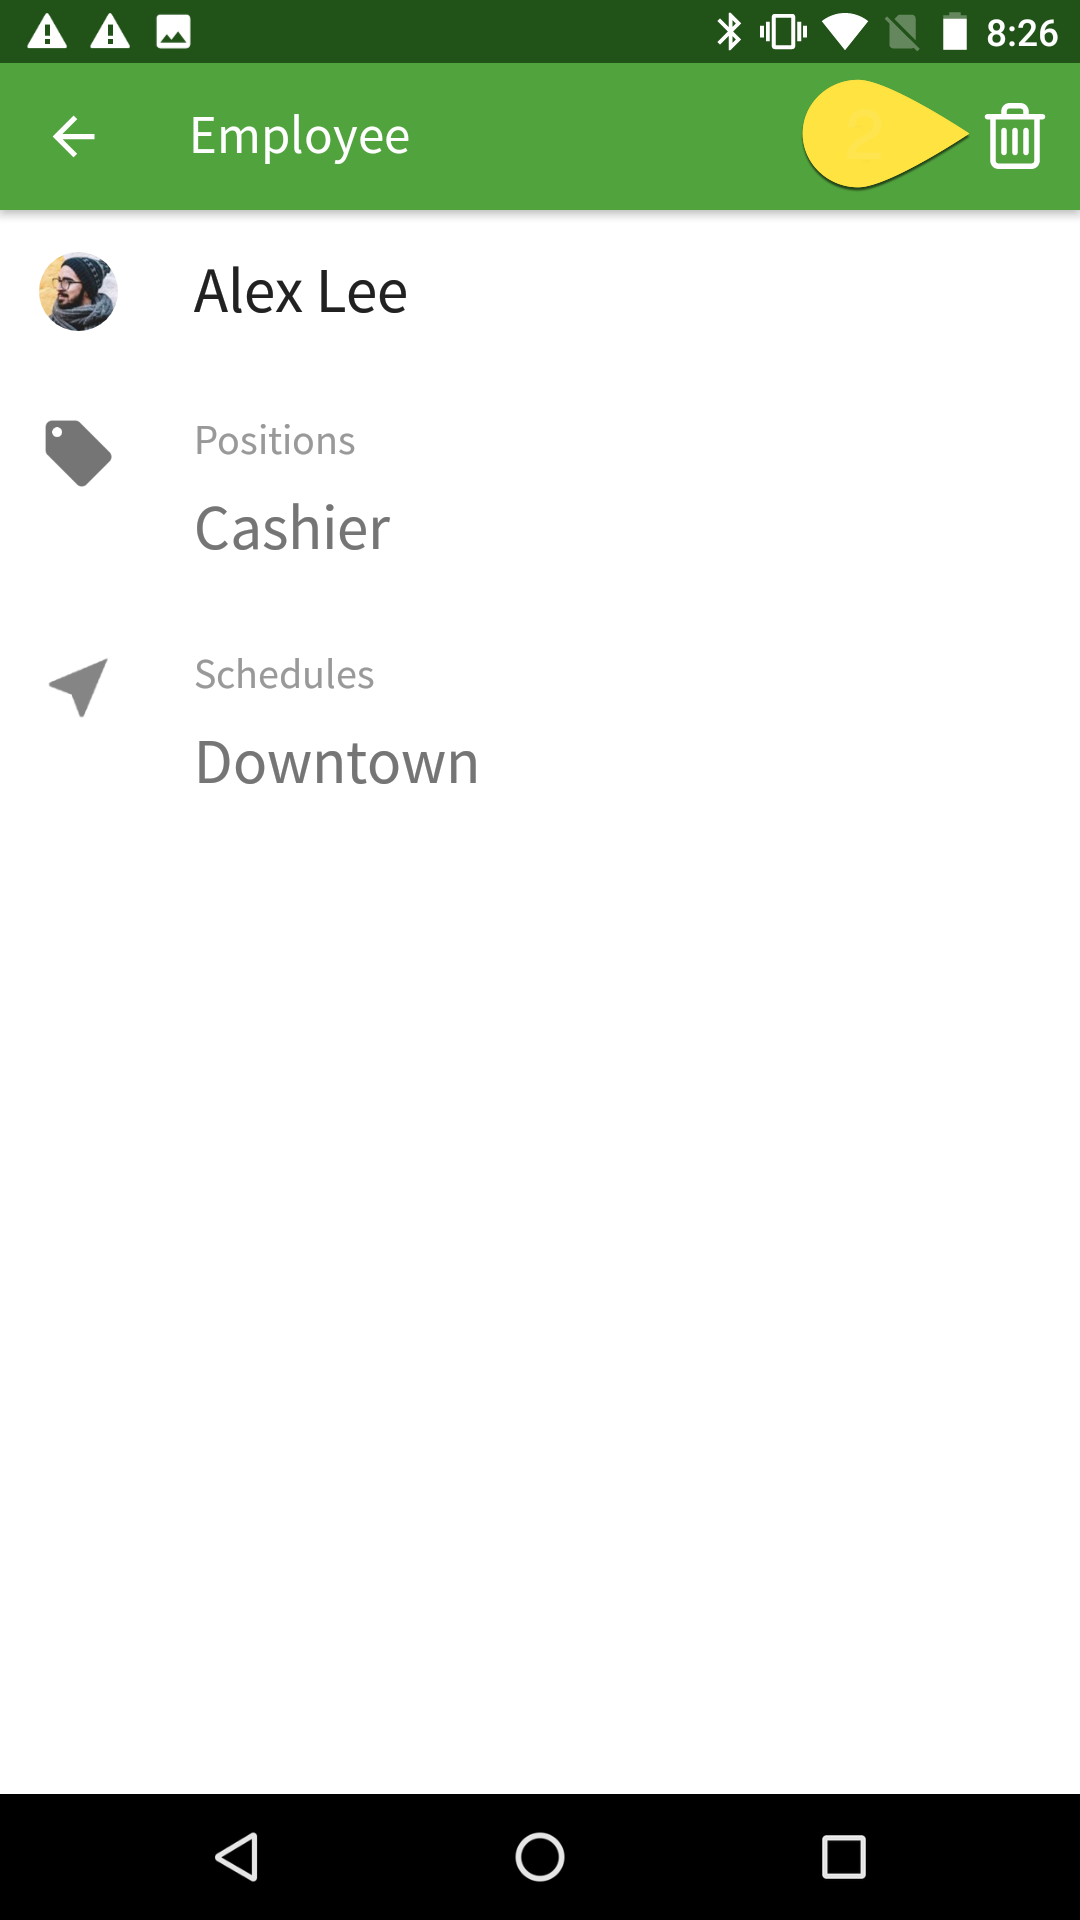 Archiving an employee from Android using the trashcan icon